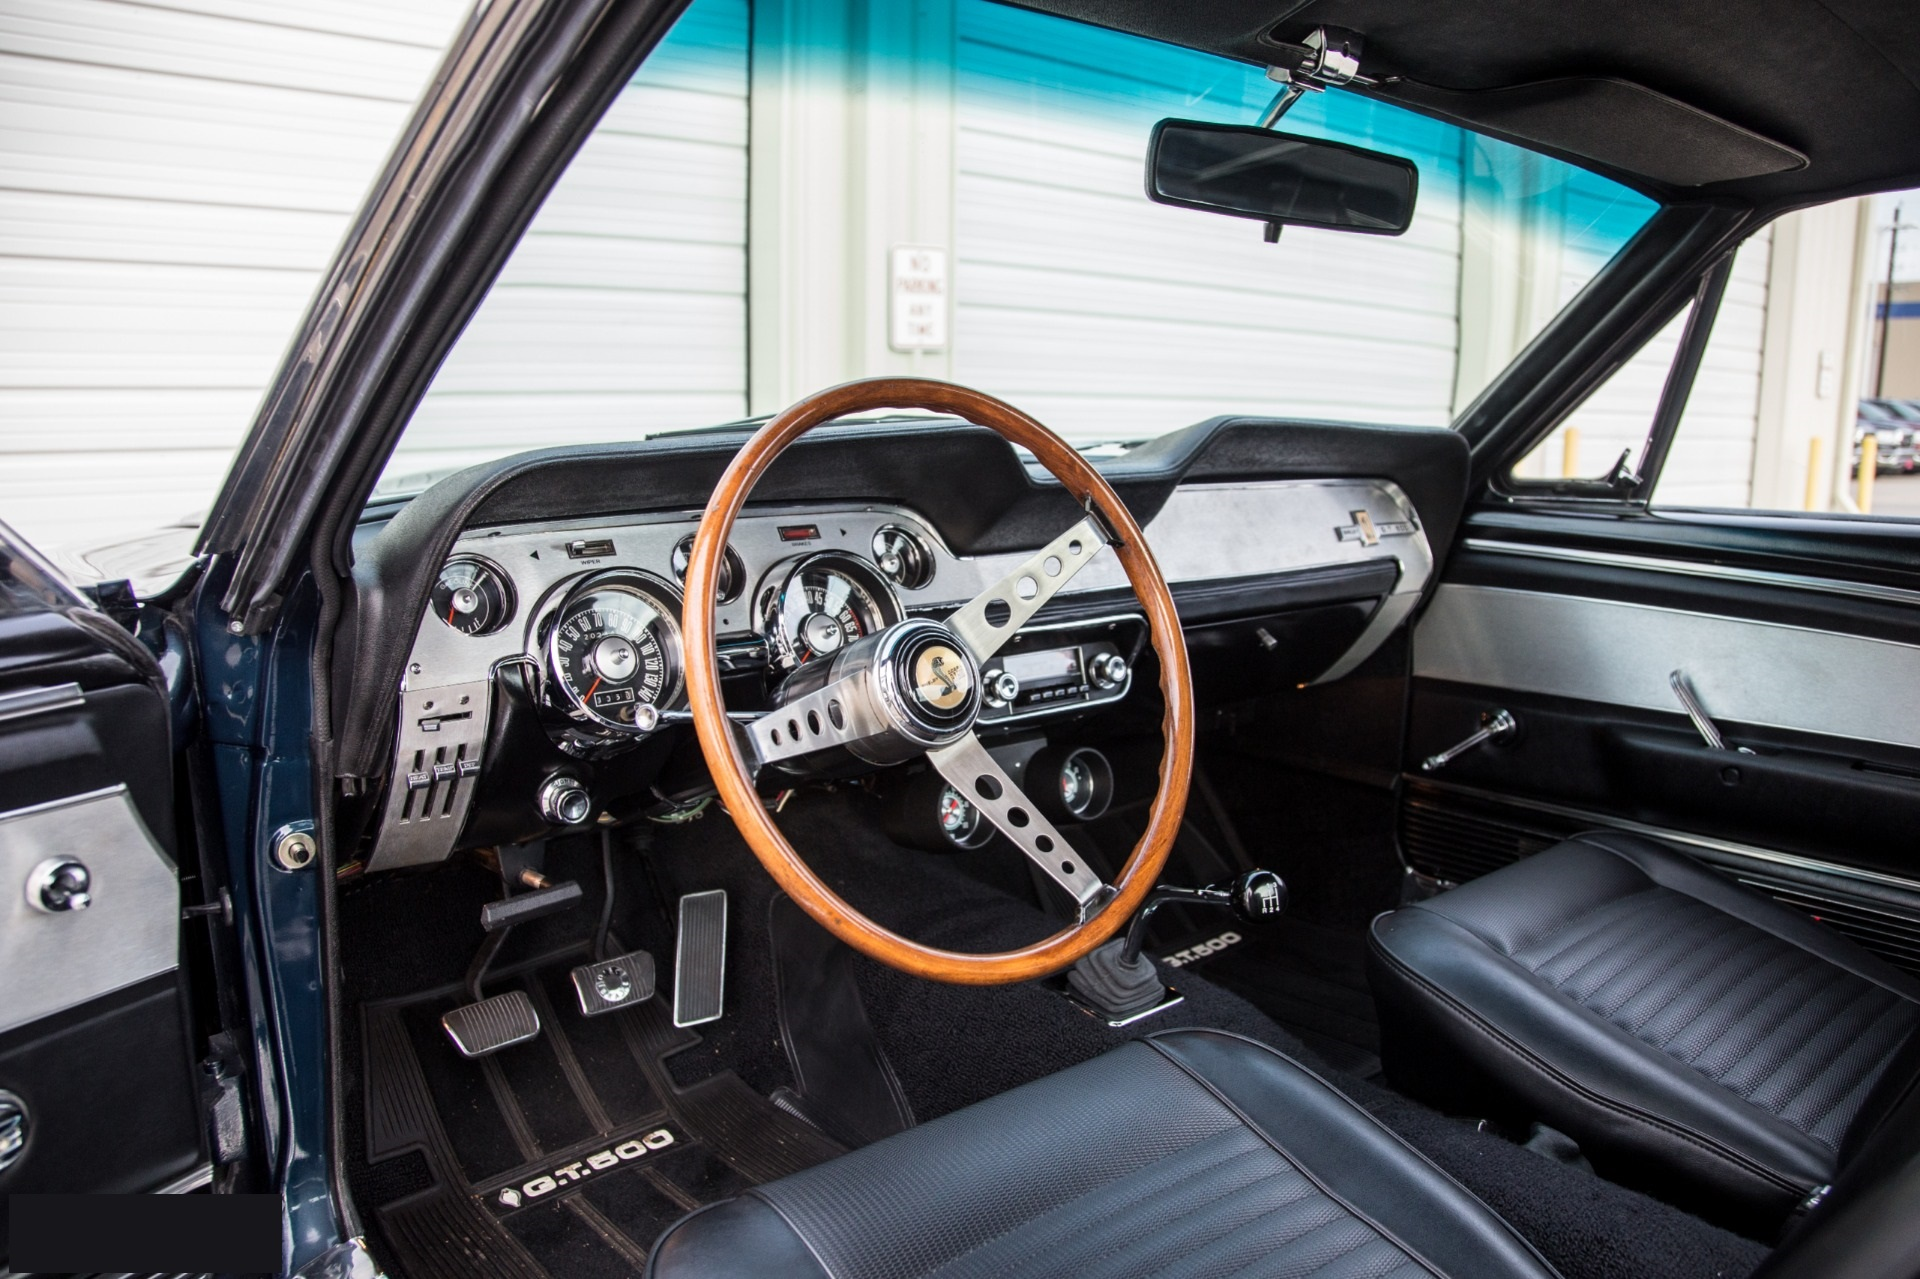 Mustang Fastback Shelby GT500 428 ci V8 manuelle 1967276 944 €